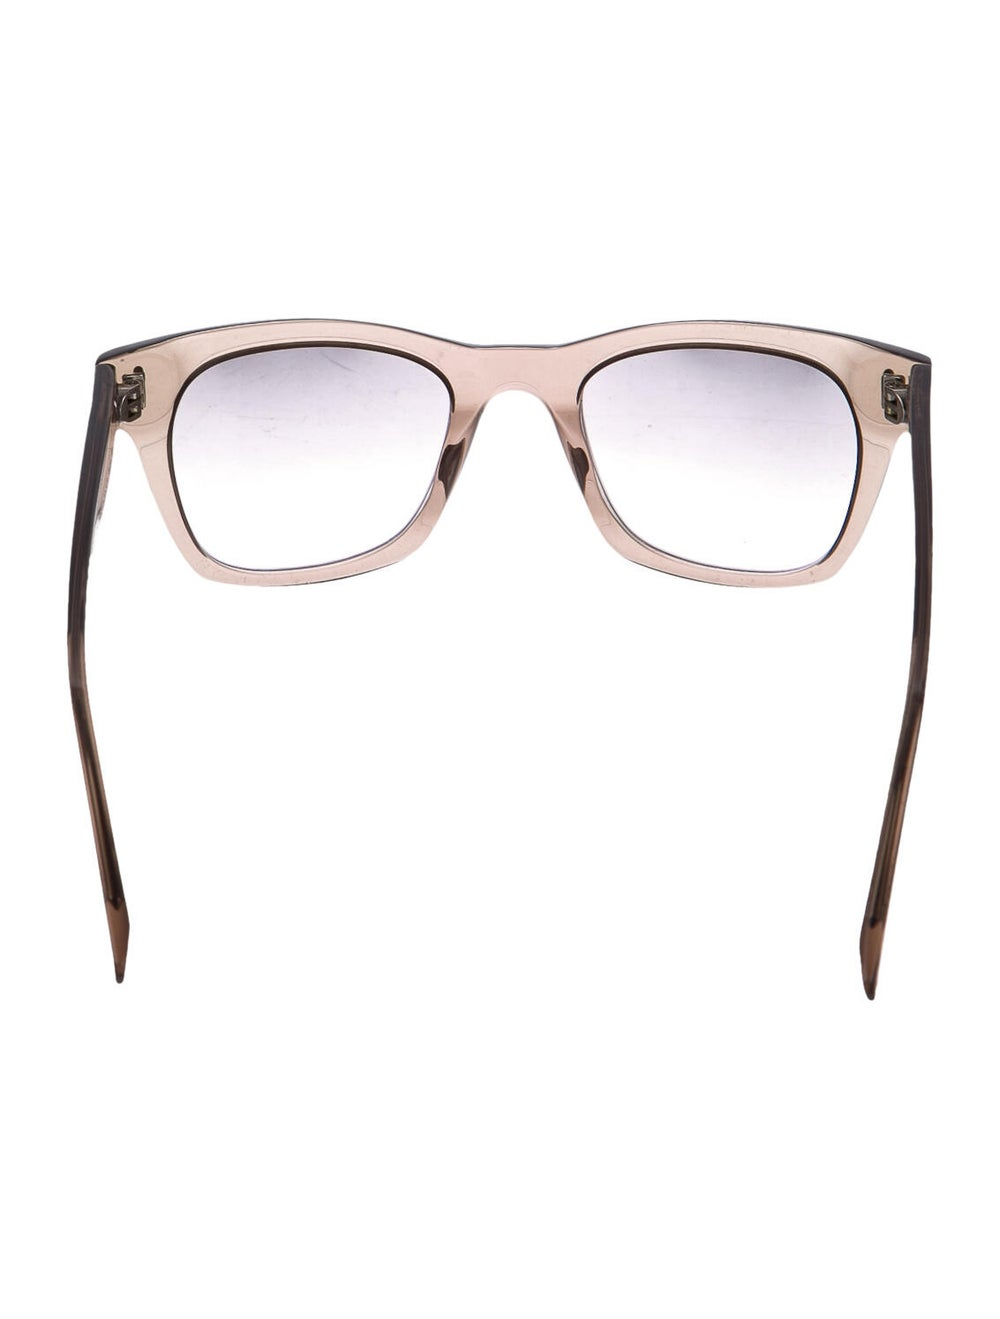 Warby Parker Harris Square Sunglasses - image 3